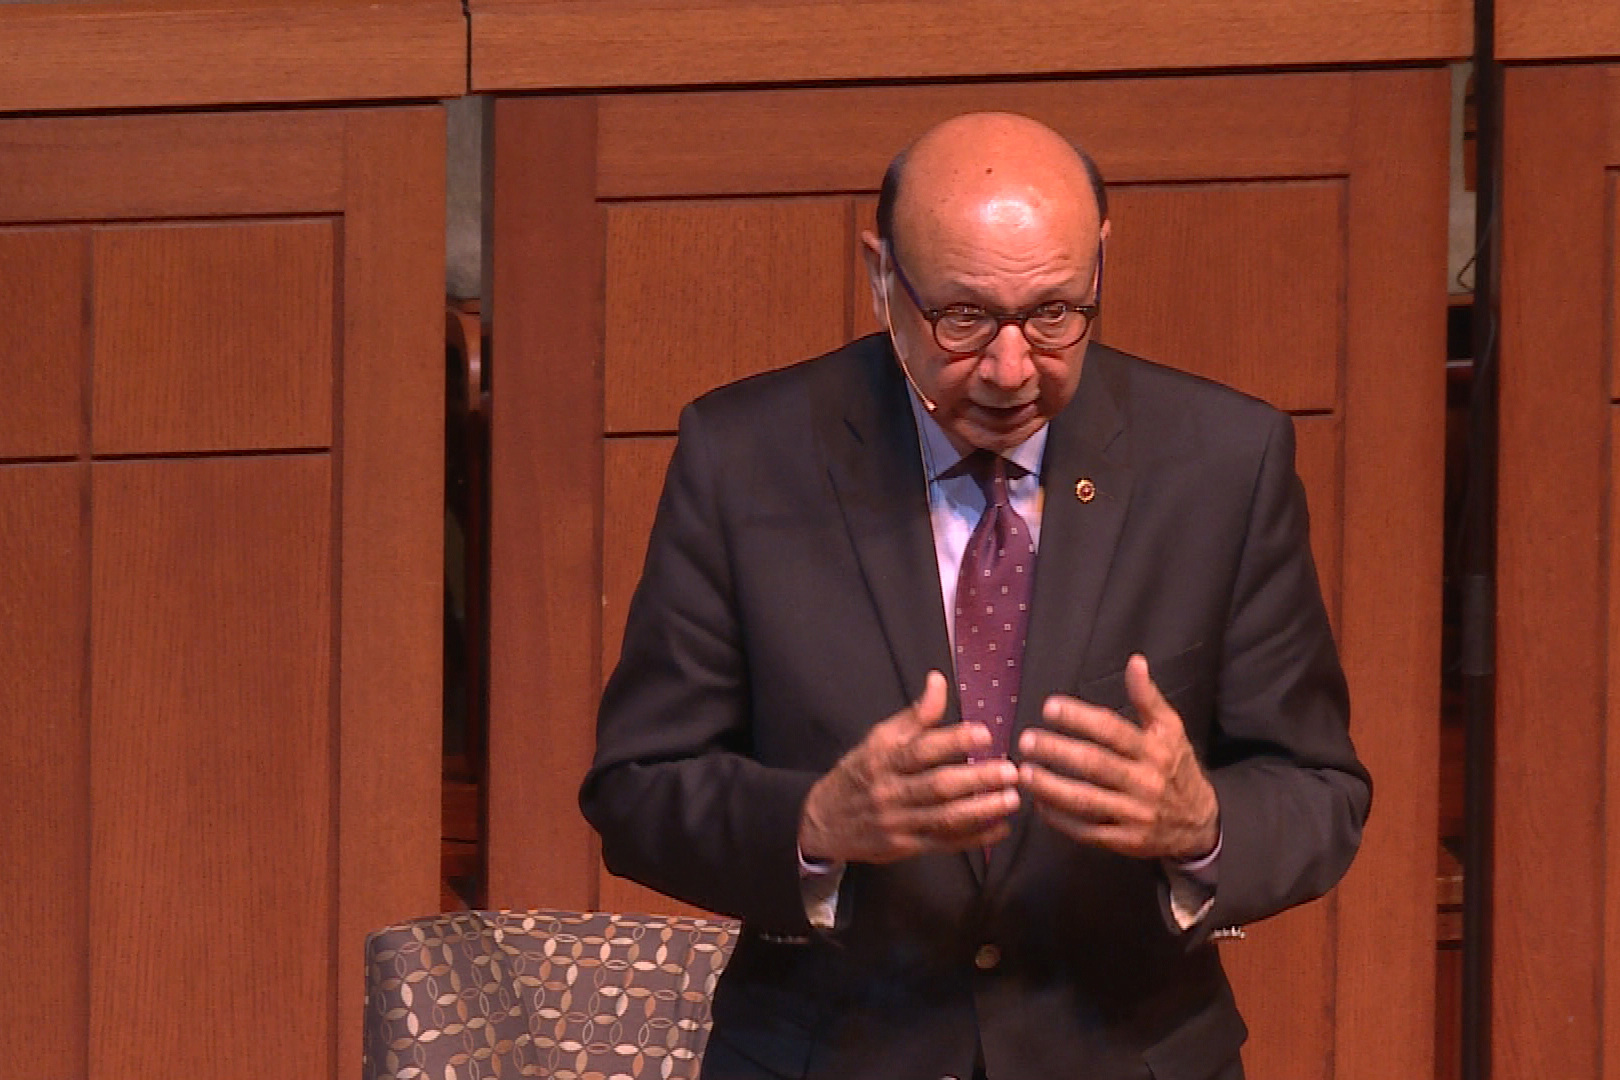 Khizr Khan speaks a message of peace and unity to a crowd of hundreds in Indianapolis Saturday night.